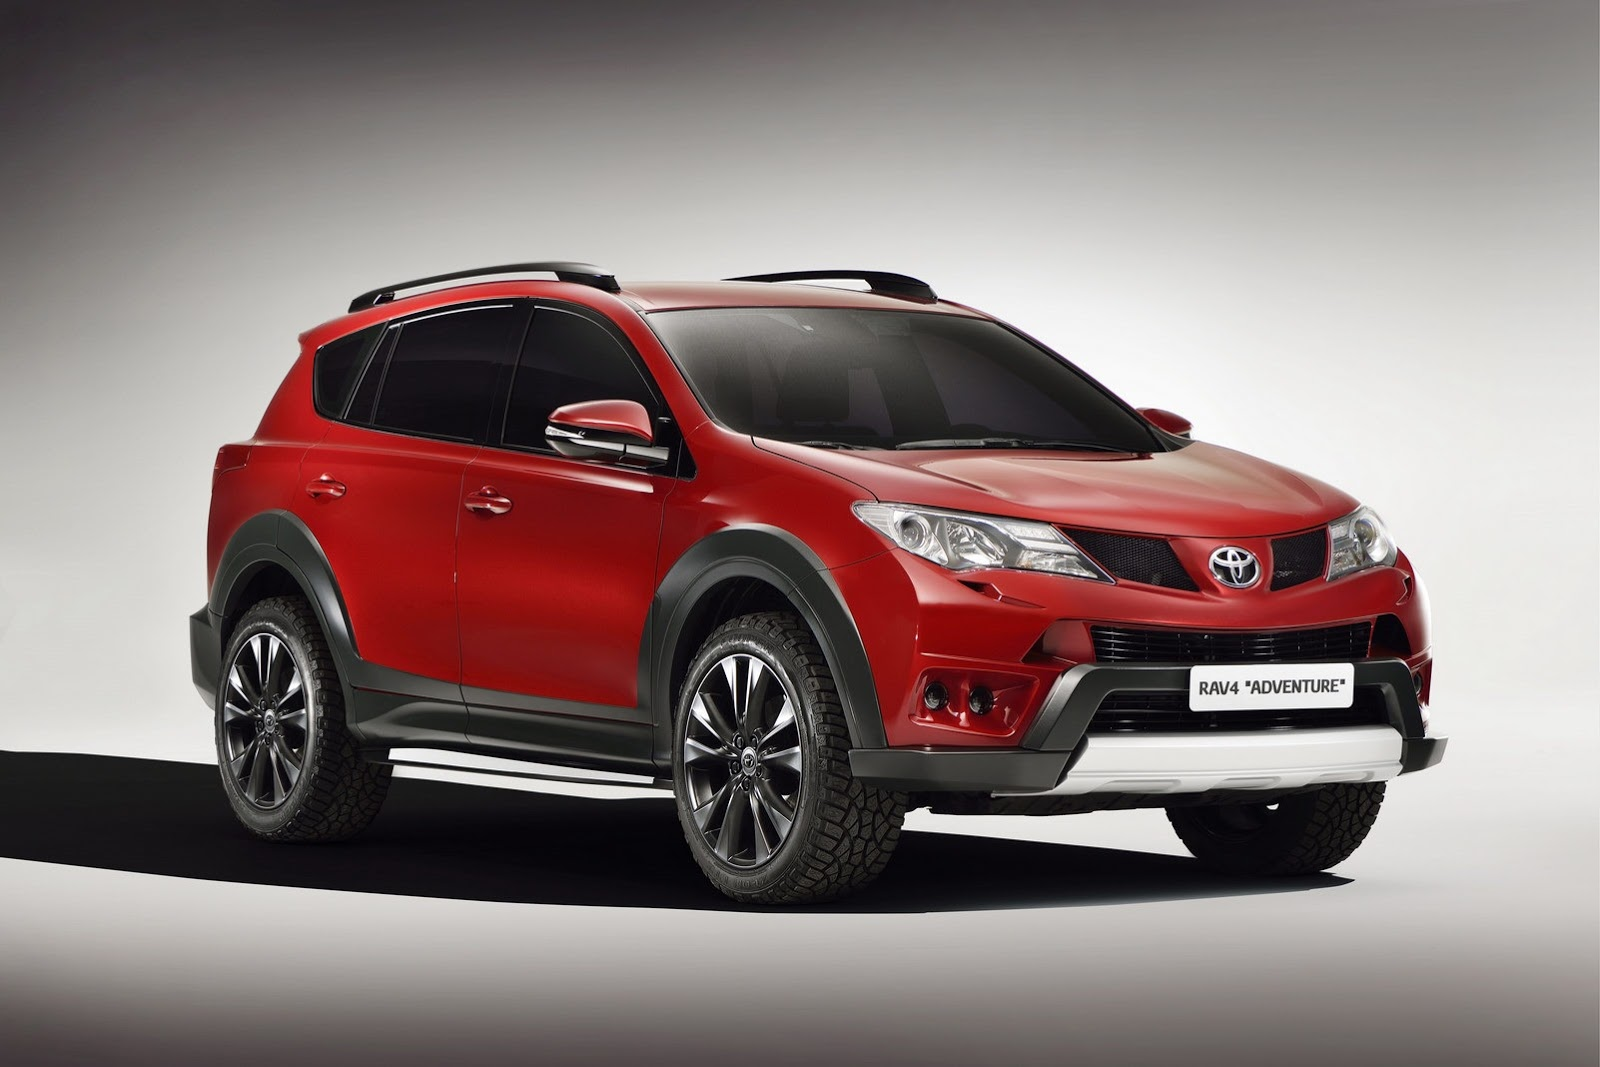 Toyota Gets Tough Luxurious With New Rav4 Concepts